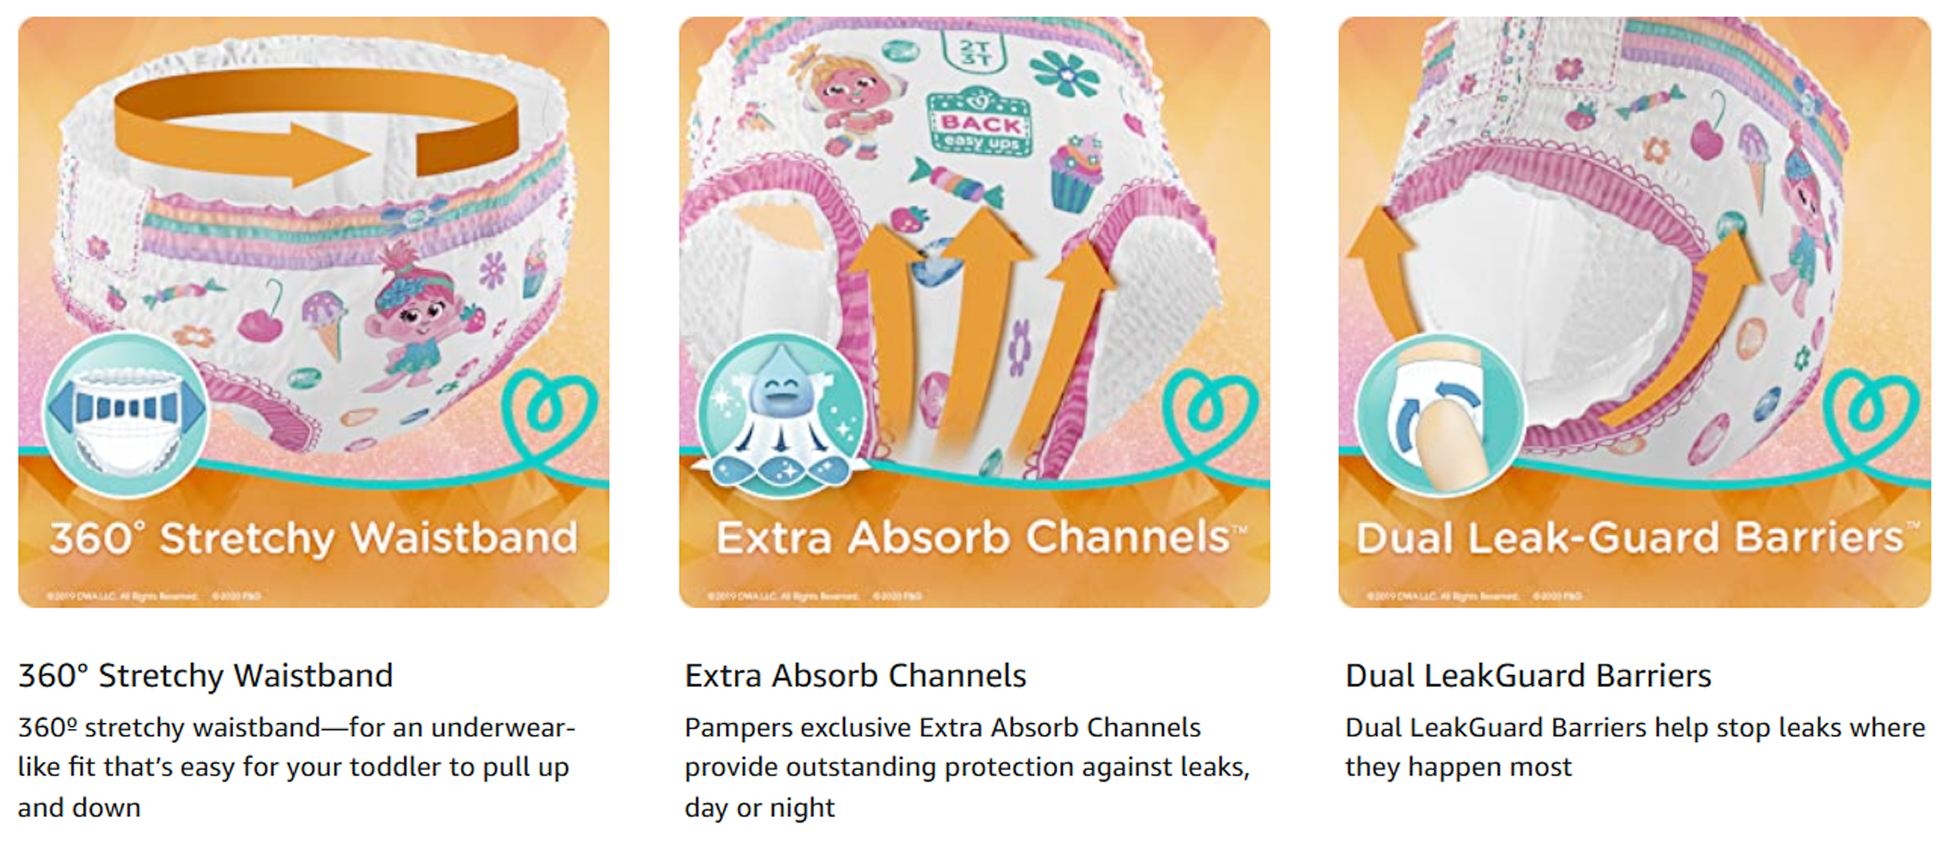 Check Out Ingredients for Non-Toxic Diapers